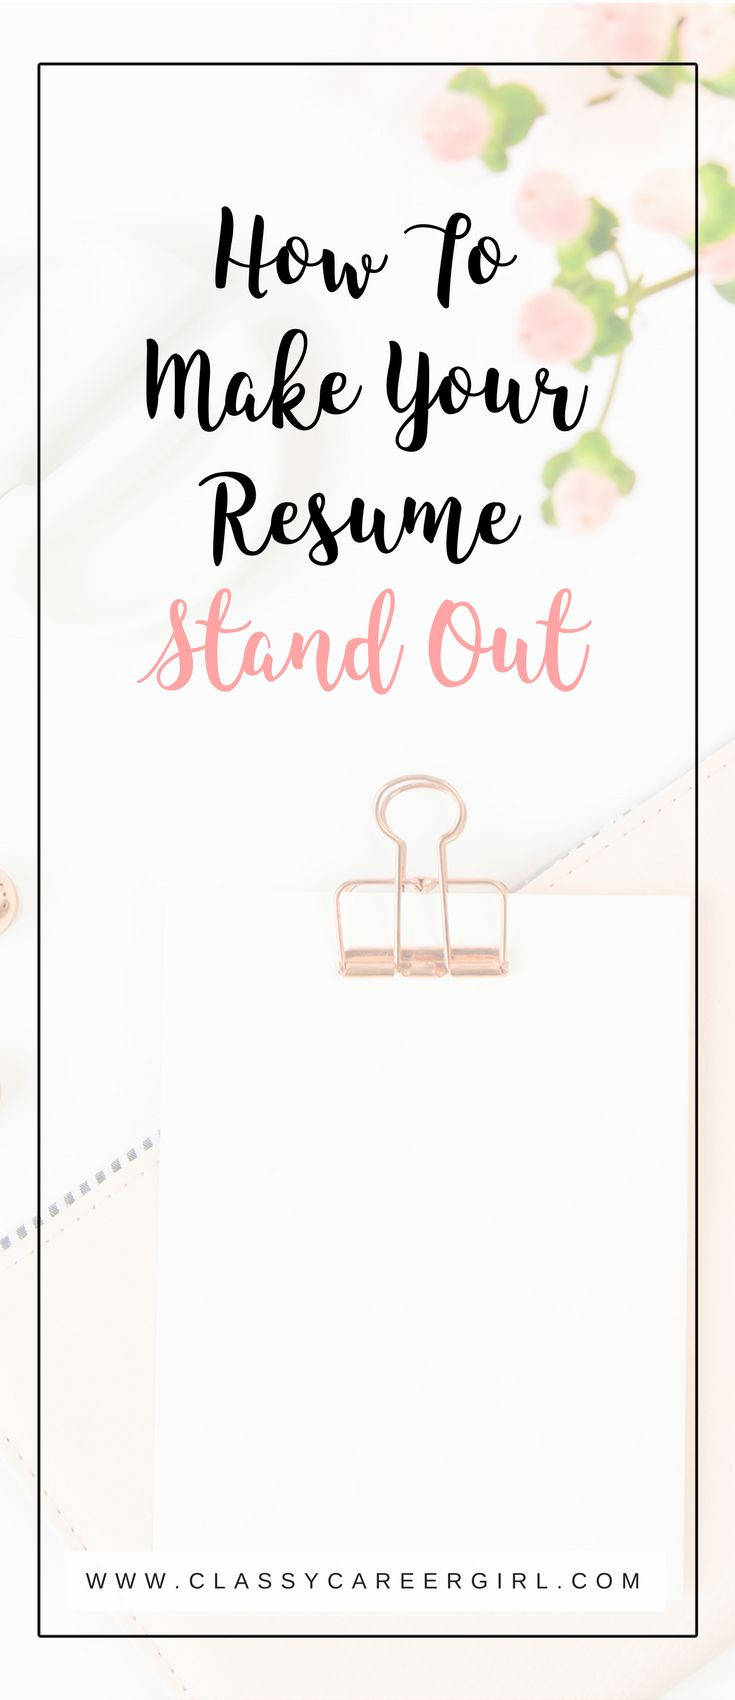 How To Make Your Resume Stand Out | Classy Career Girl